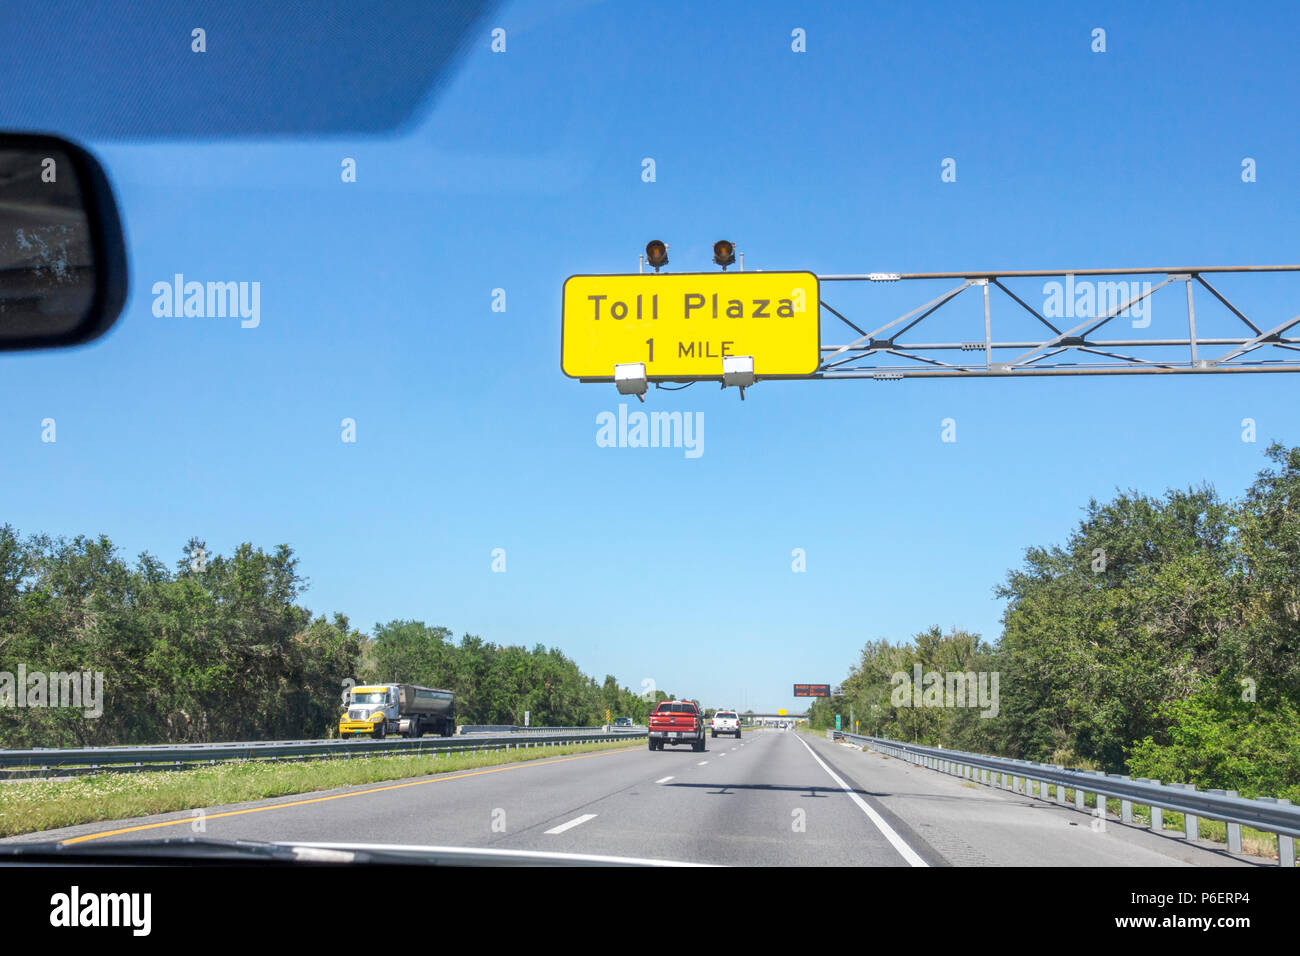 Fort Ft. Pierce Florida Florida Turnpike toll road plaza distance information sign roadway highway traffic - Stock Image